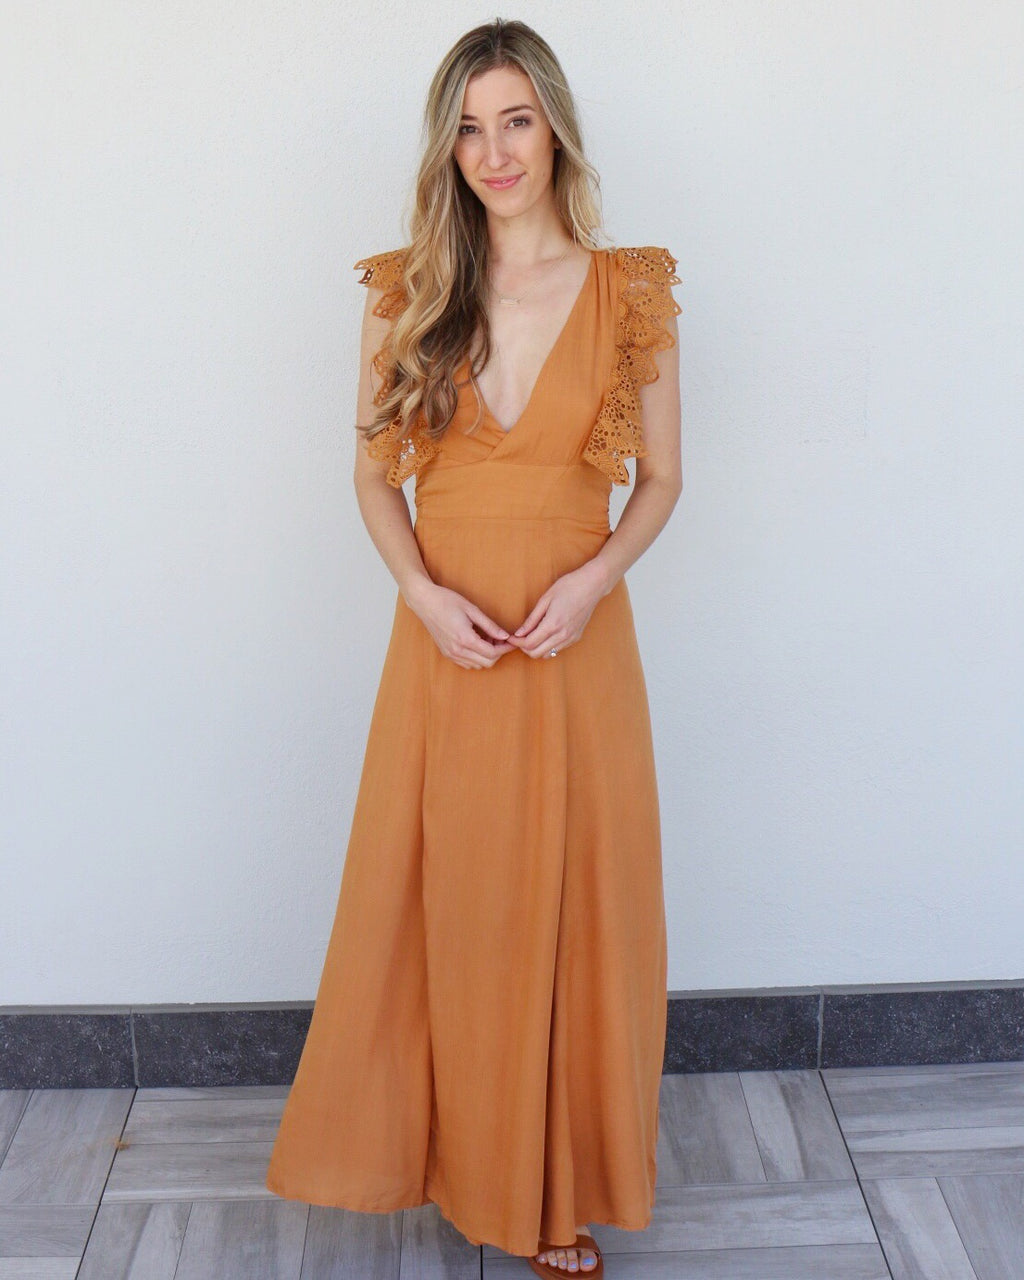 Loraine Dress in Caramel